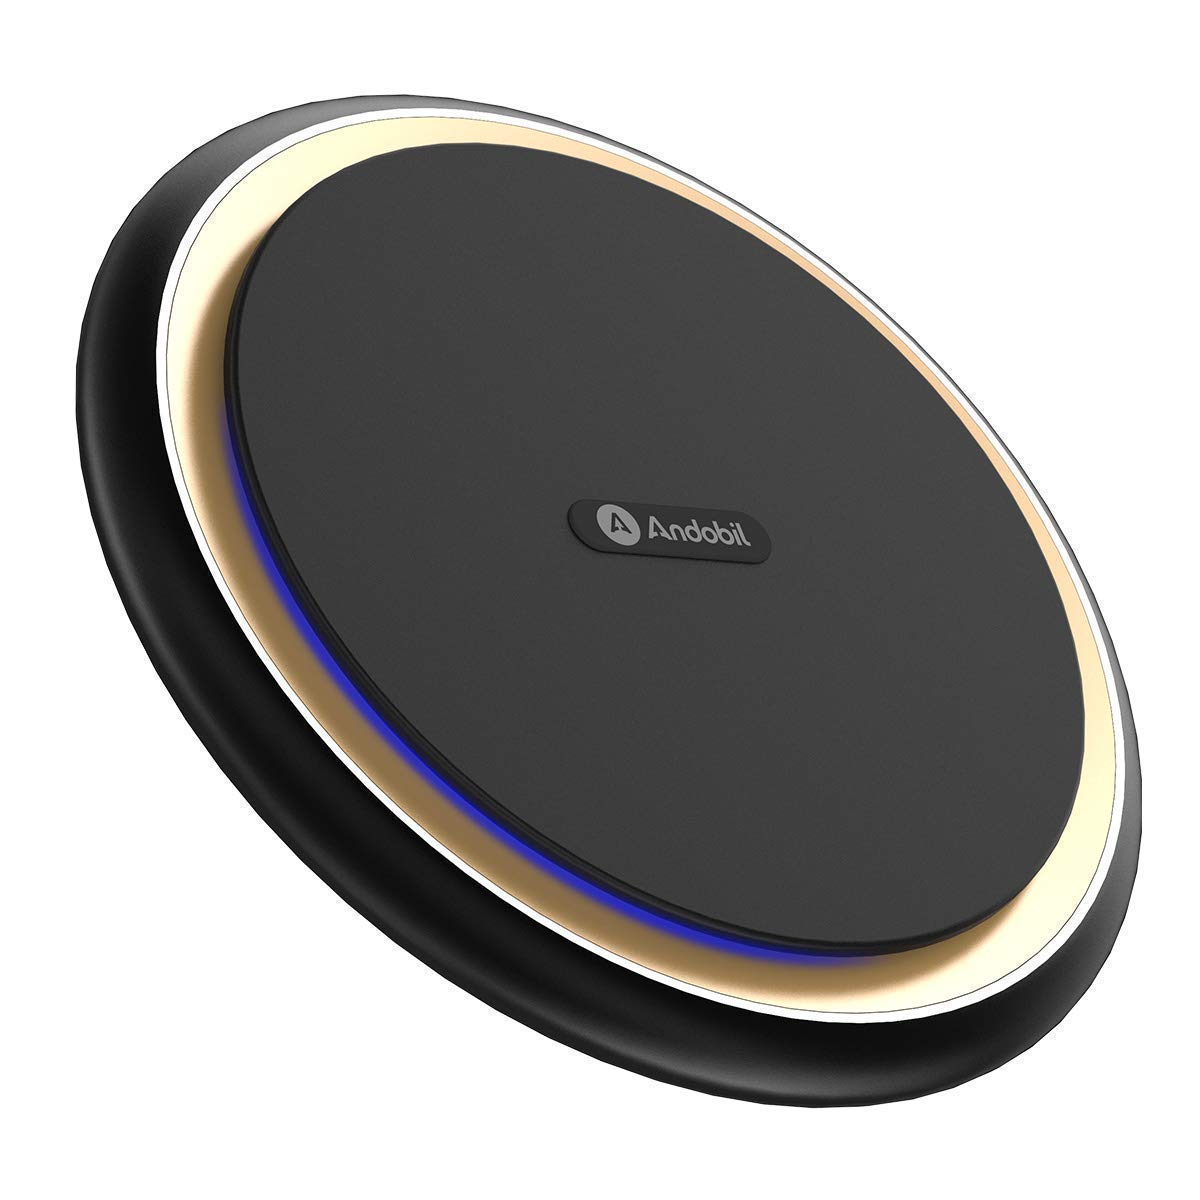 Andobil Boost 15W Fast Wireless Charger, USB-C Qi Certified Aluminum Alloy Cooling Charging Pad Station Compatible Optimized iPhone Xs Max/XS/XR/X/8/8+,Samsung Galaxy S10/S10+/S10e/S9/S9+/S8/S8+